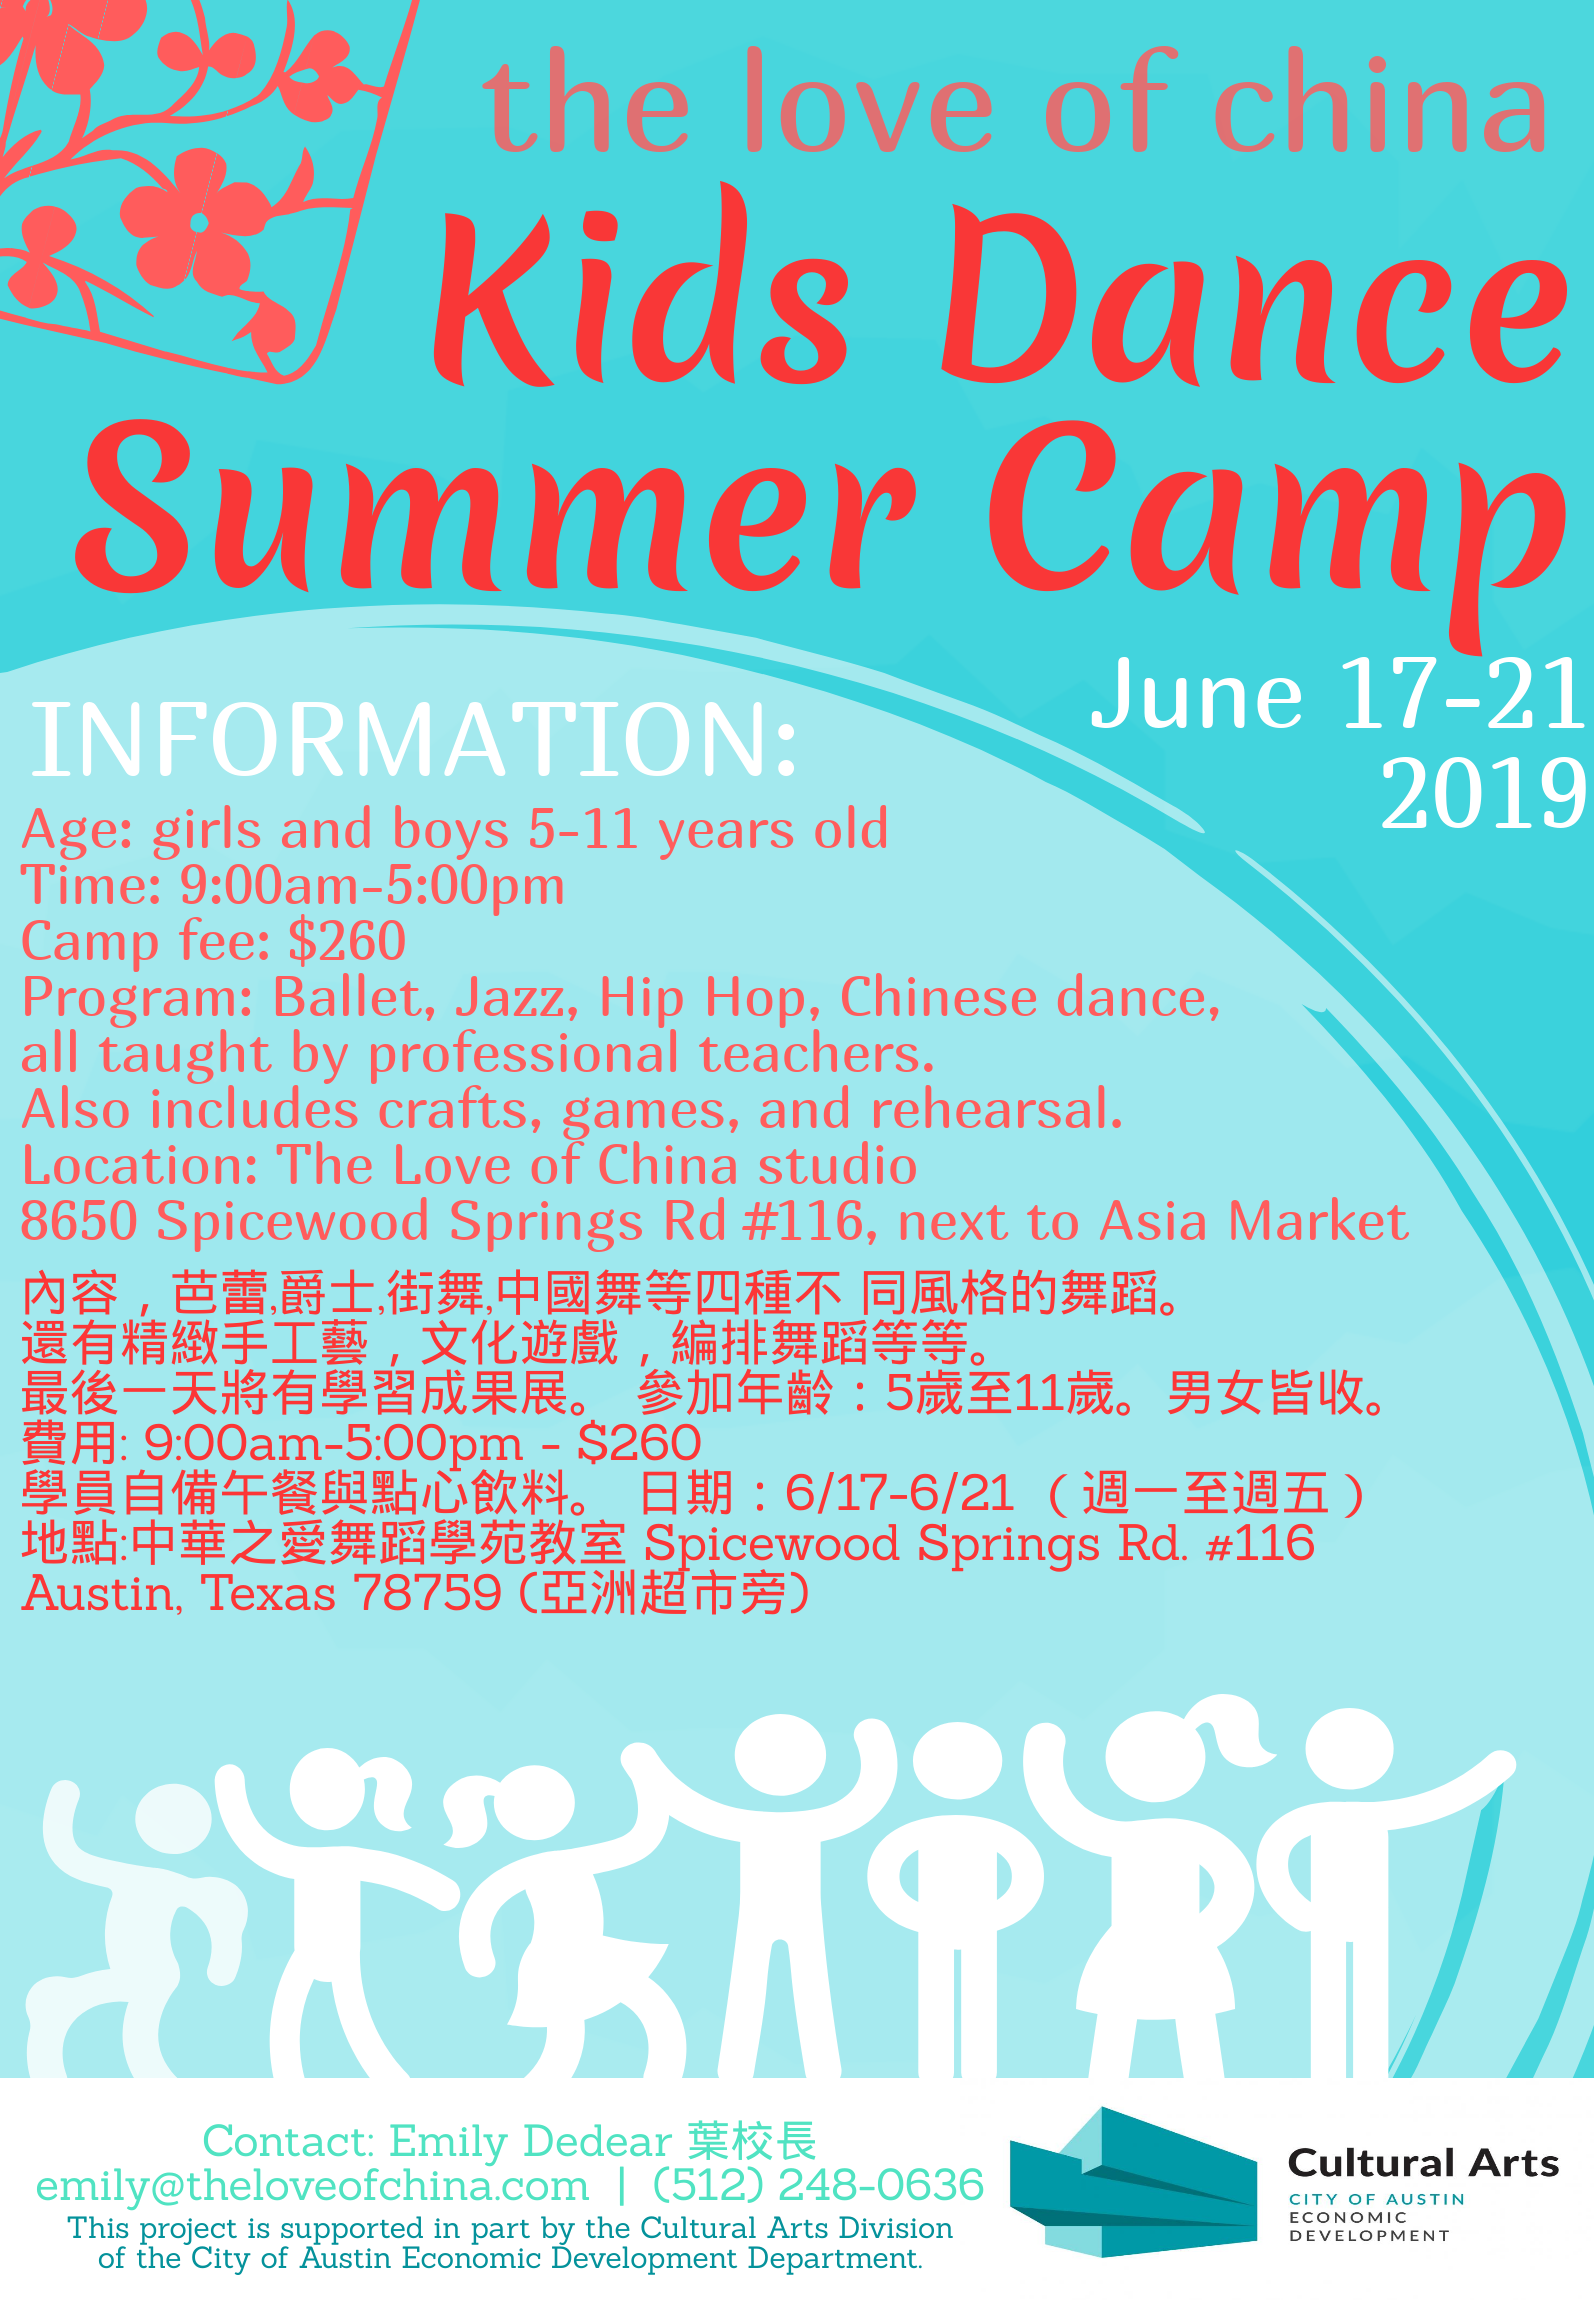 The Love of China Kids Summer Dance camp presented by The